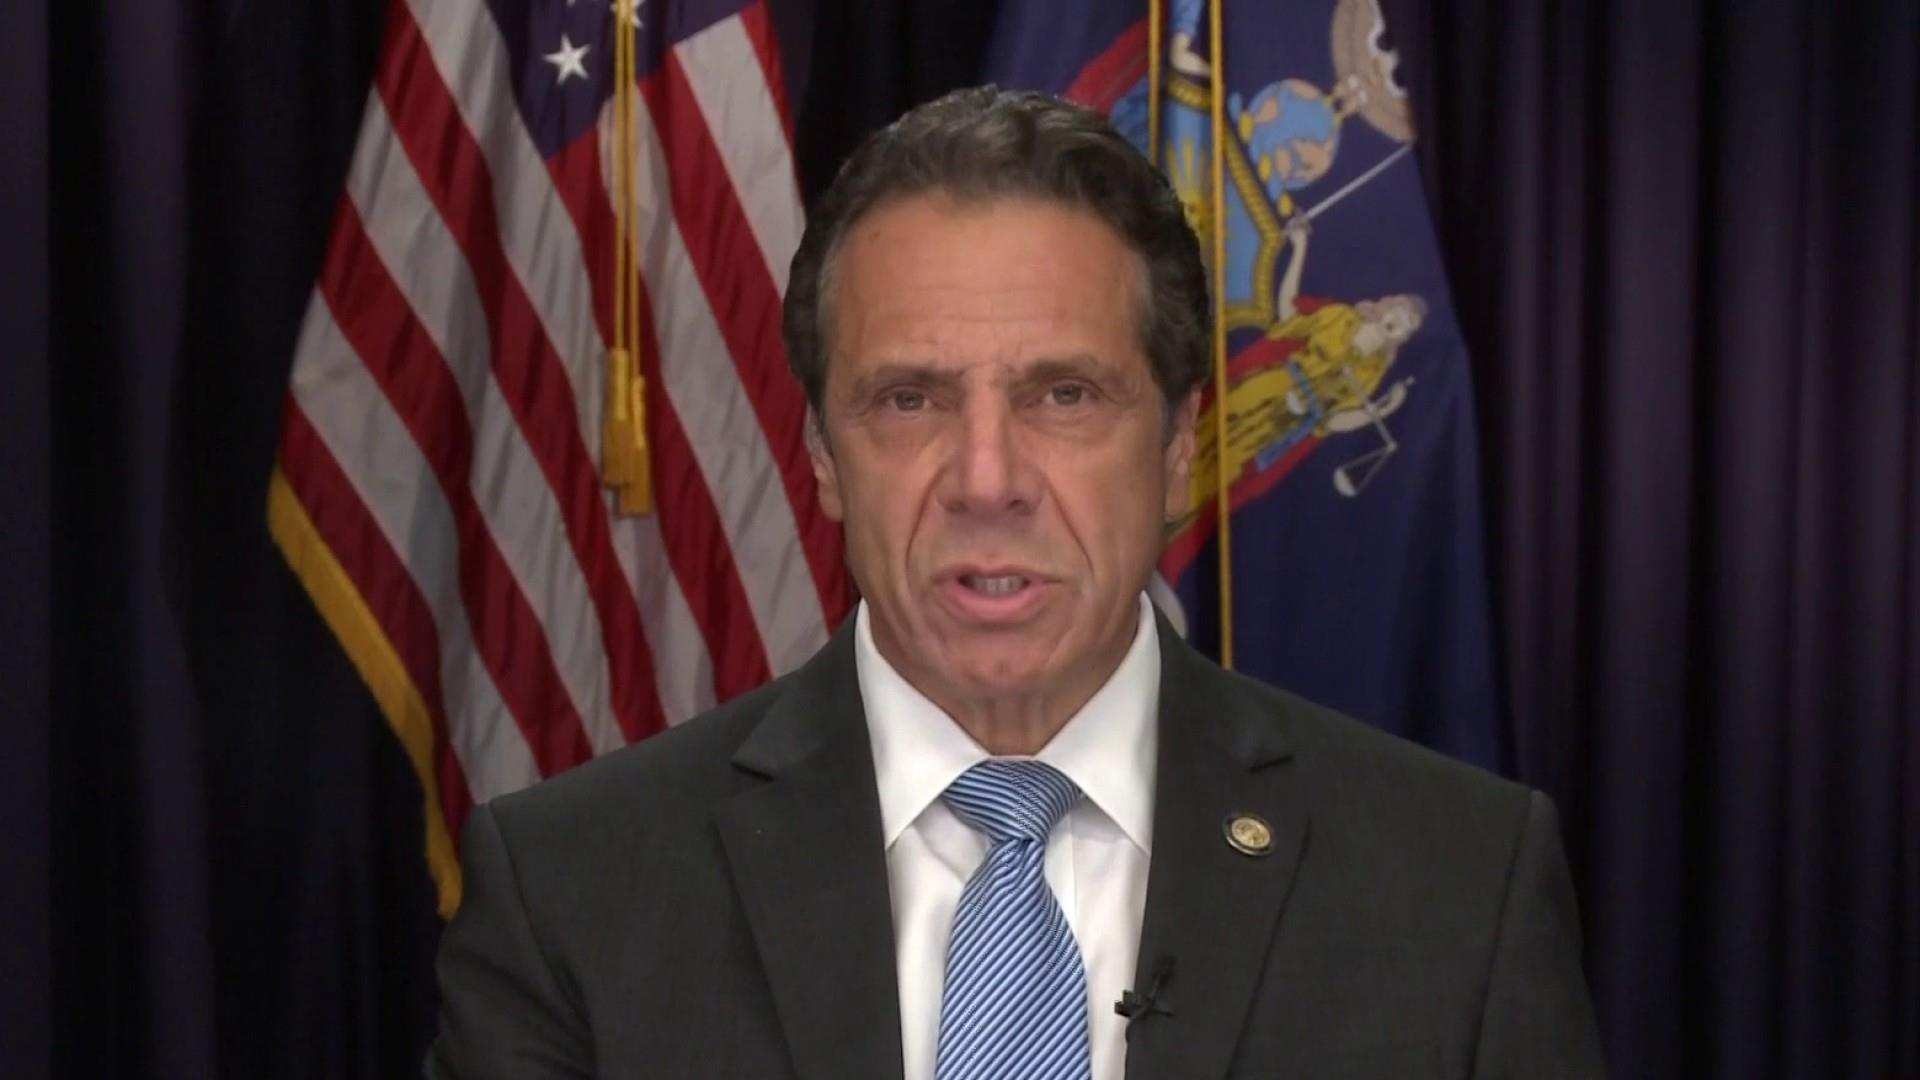 NY governor says state not blacklisting the NRA